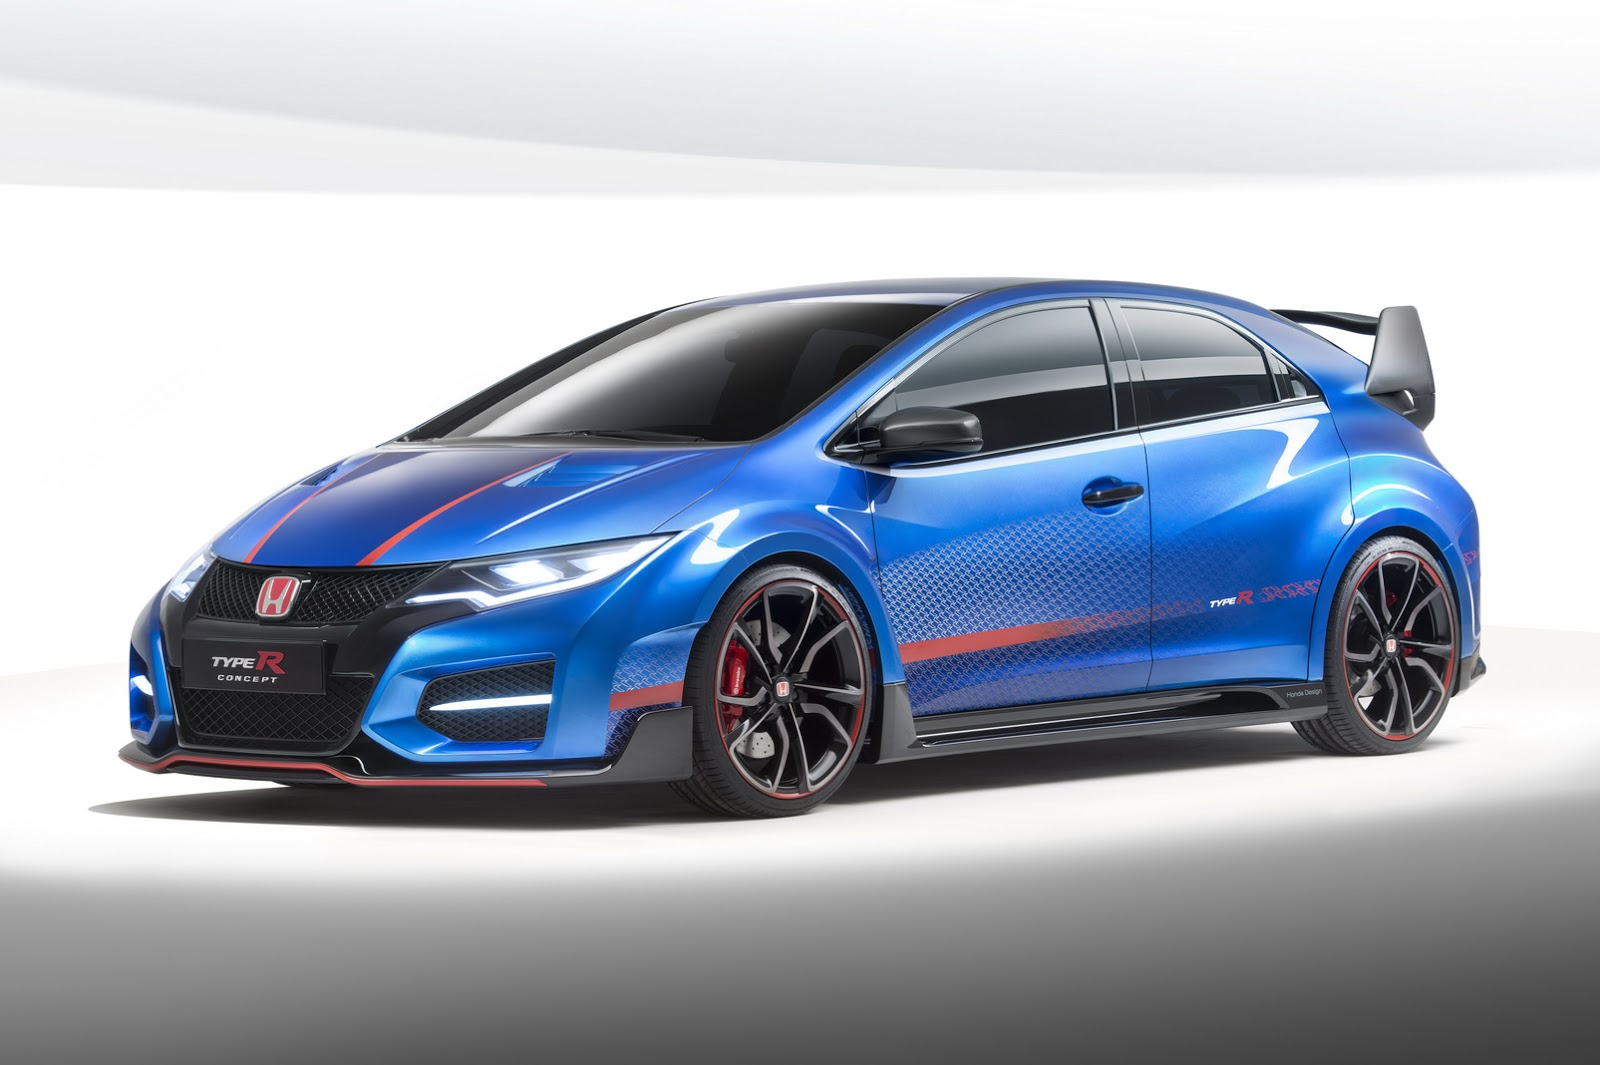 new honda civic type r concept unveiled gtspirit. Black Bedroom Furniture Sets. Home Design Ideas